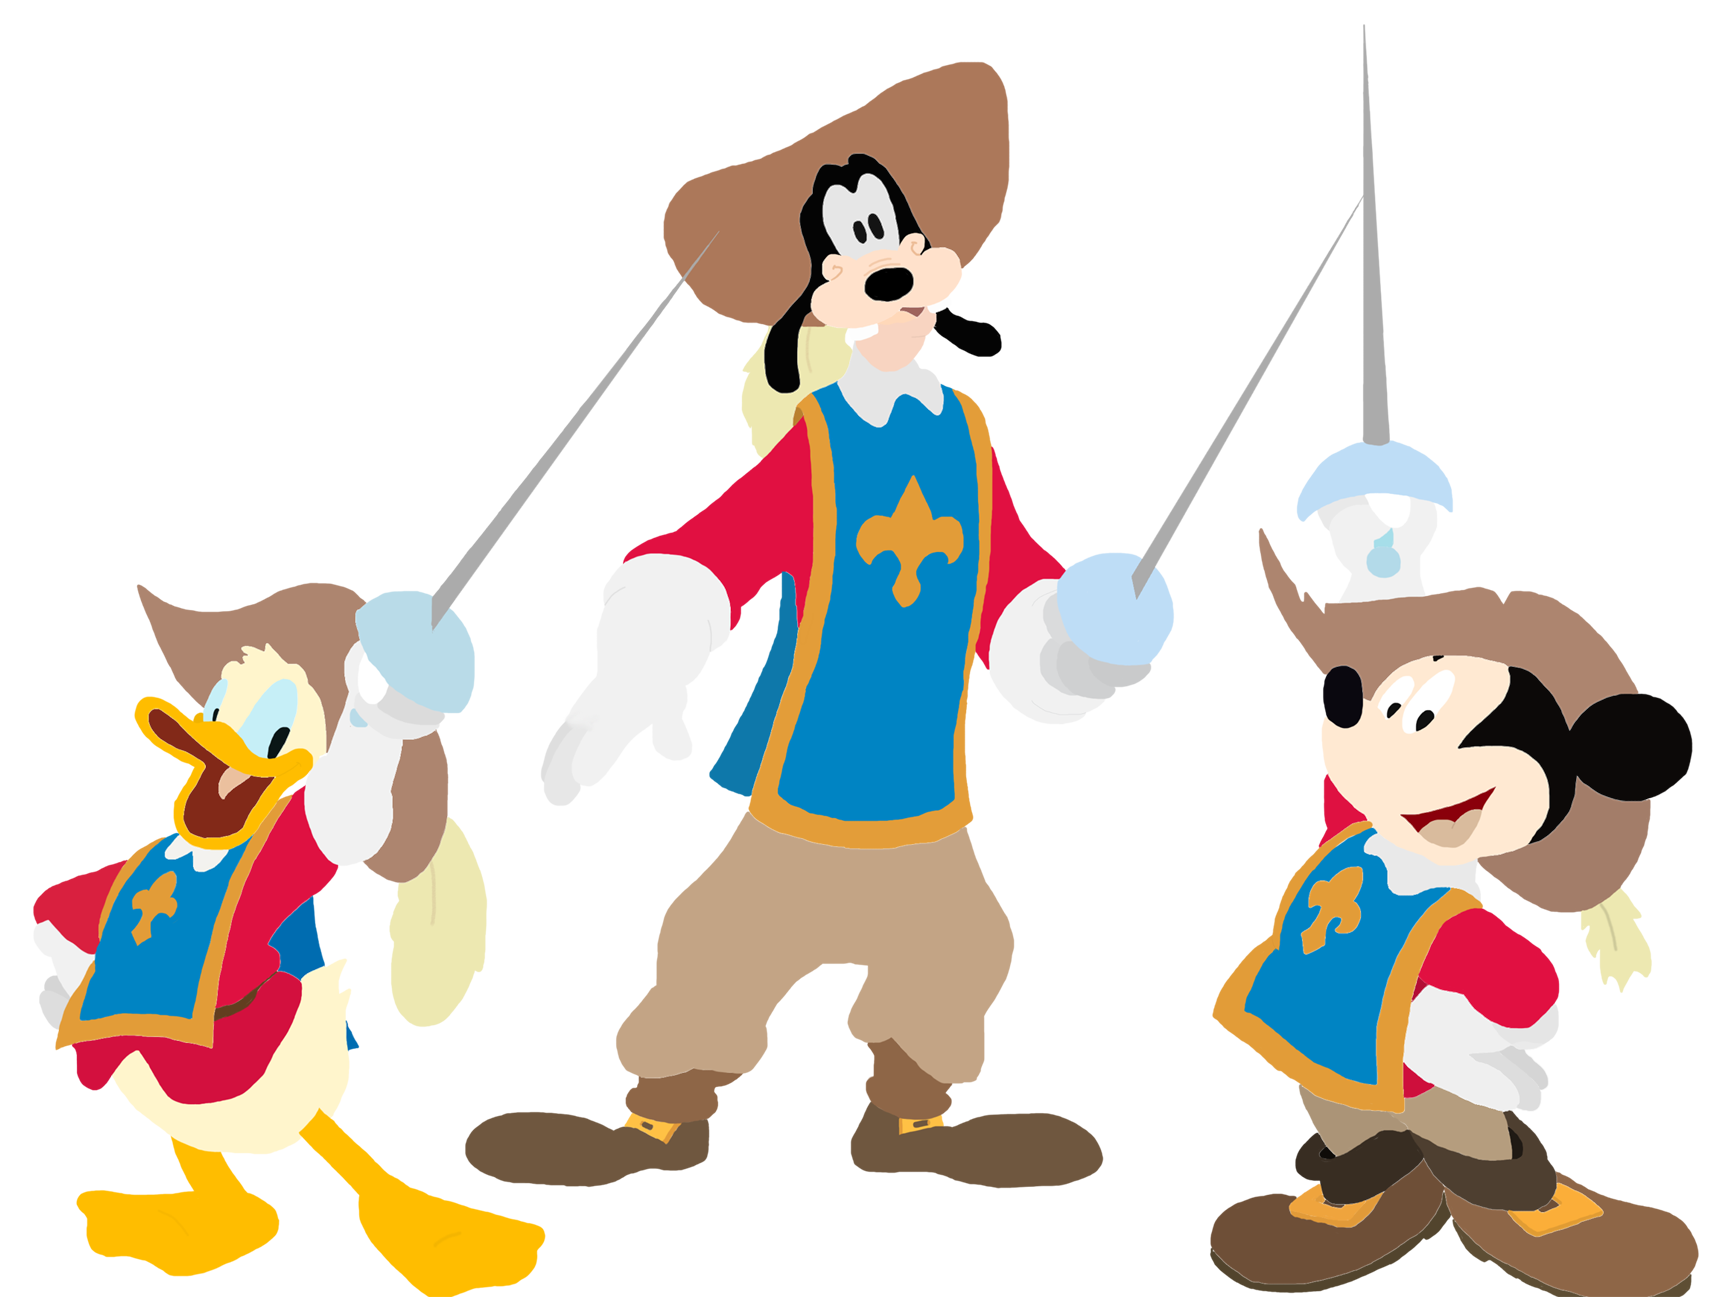 graphic freeuse download Image mickey donald the. Goofy clipart wiki